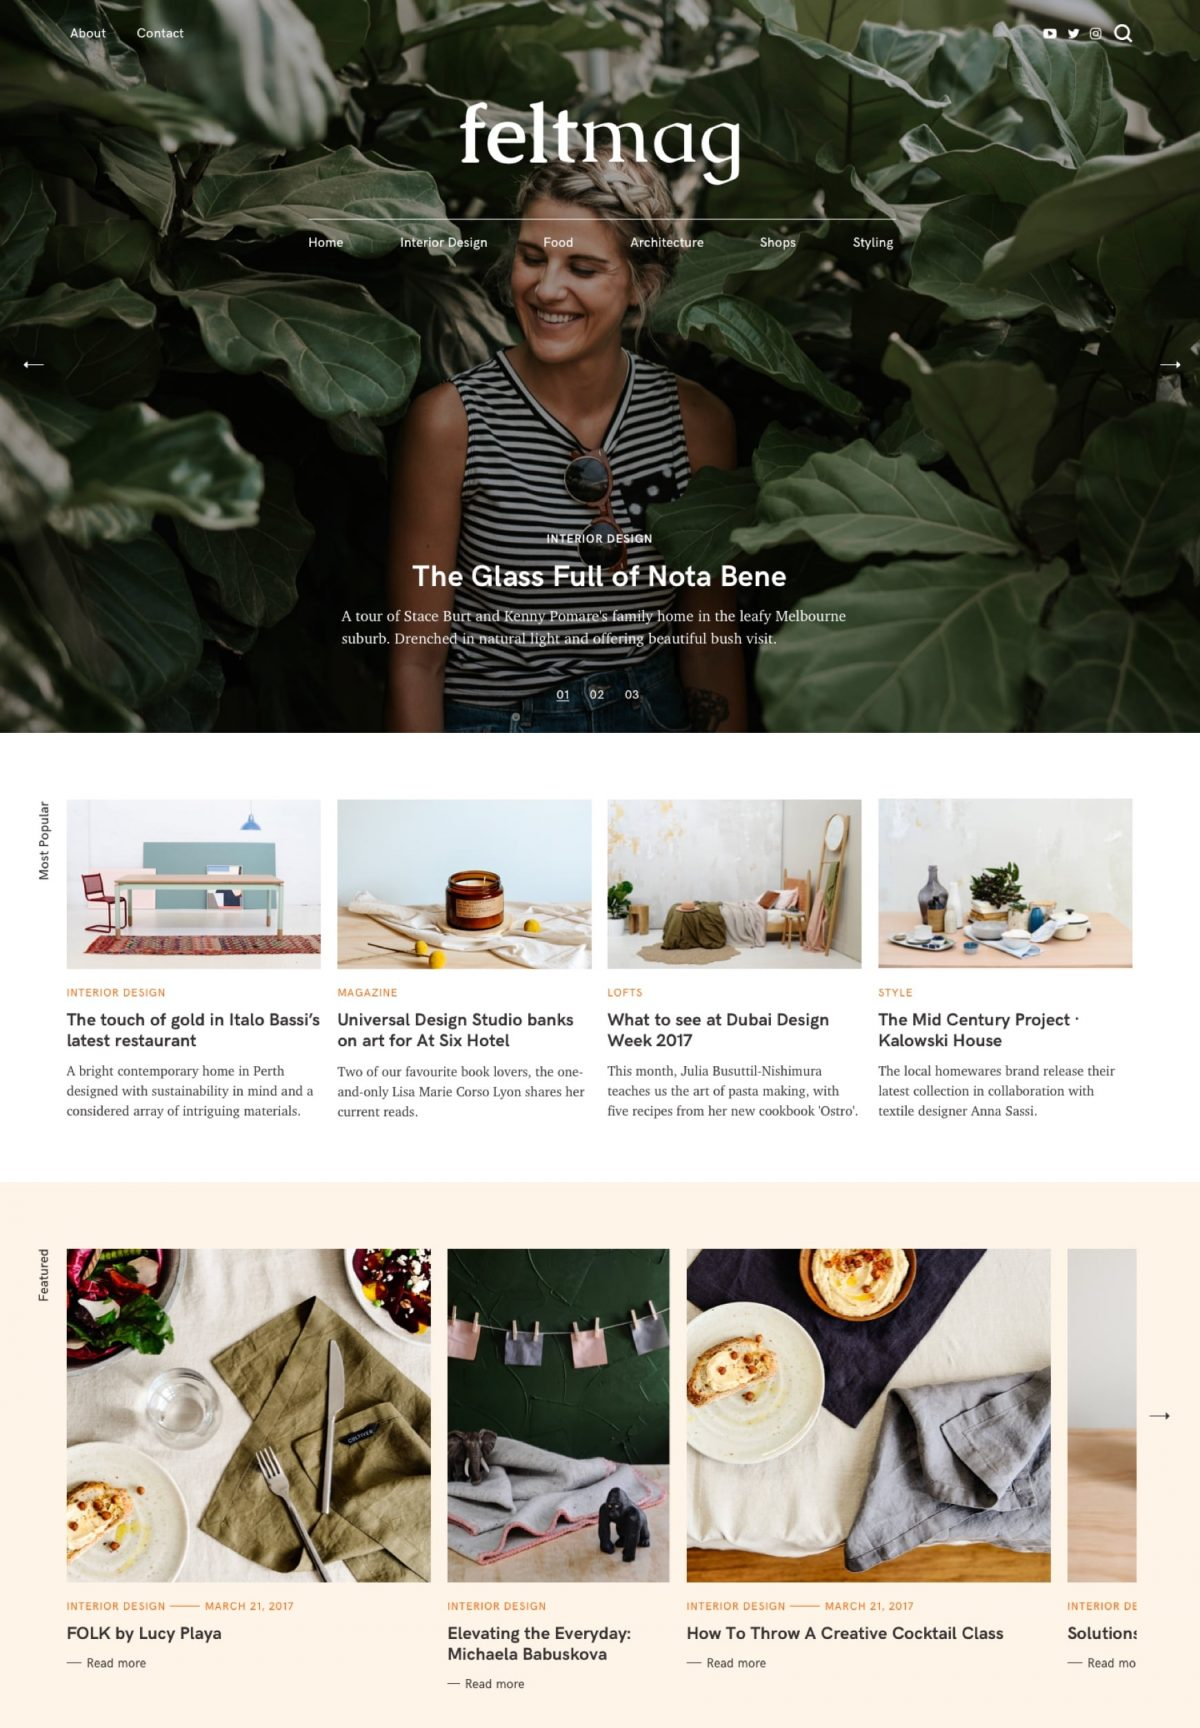 Felt Magazine Style Wordpress Theme By Pixelgrade